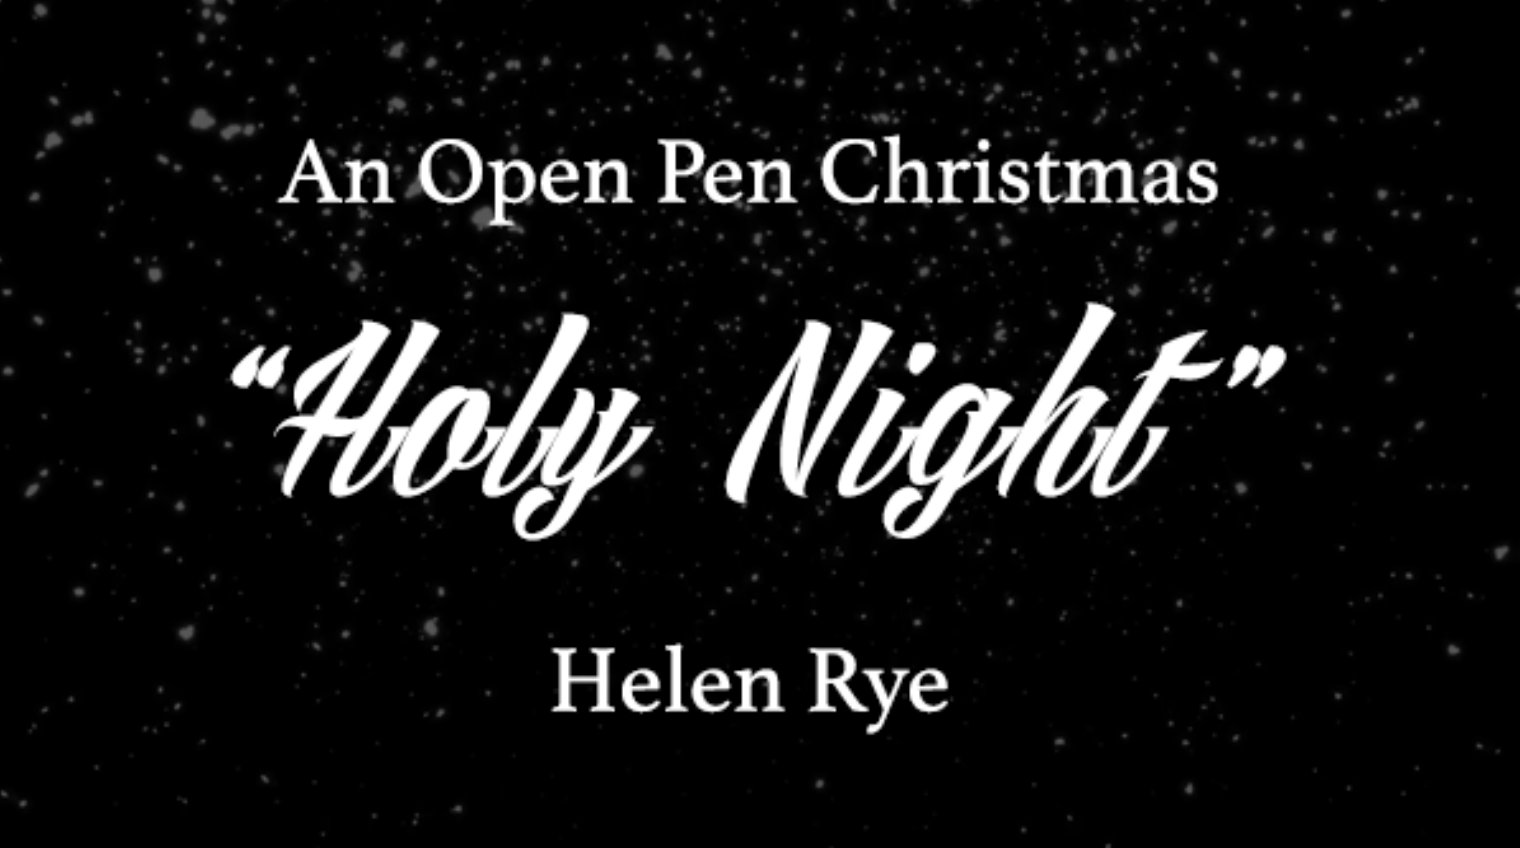 AN OPEN PEN CHRISTMAS: Holy Night